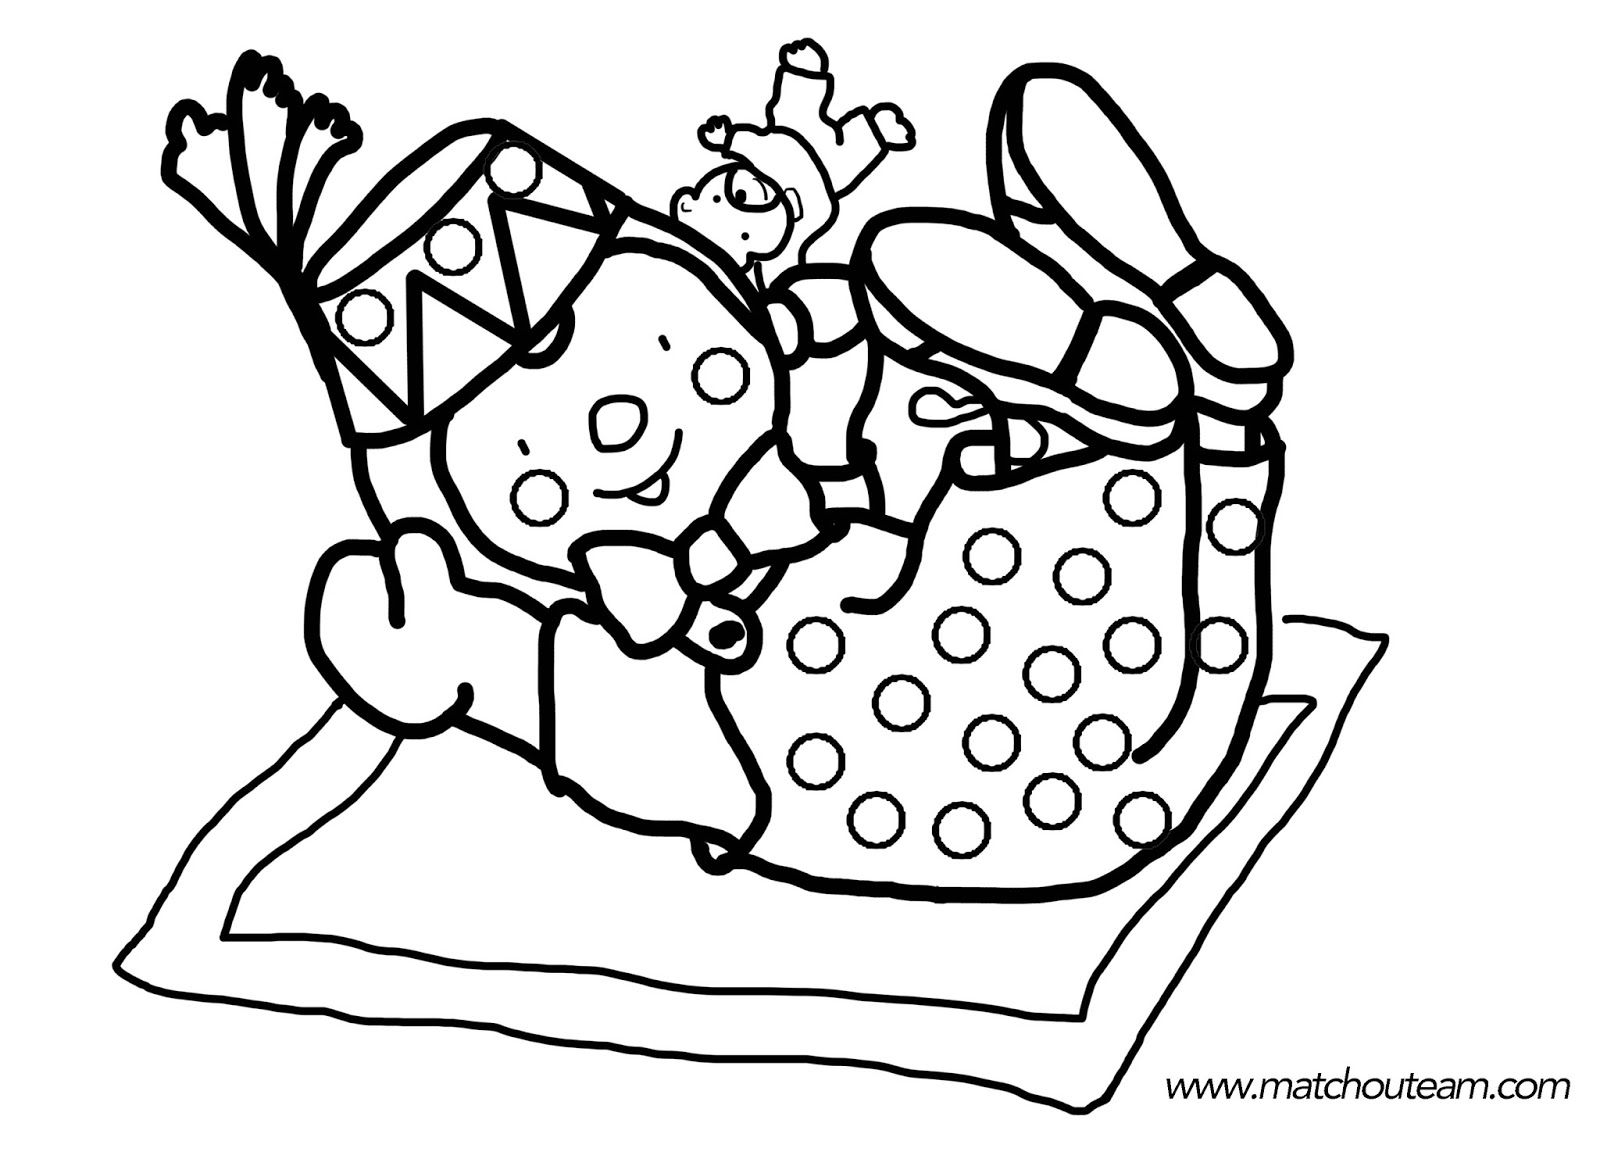 Coloriage Carnaval Ps.Top 50 Coloriage Carnaval Maternelle A Imprimer Coloriage A